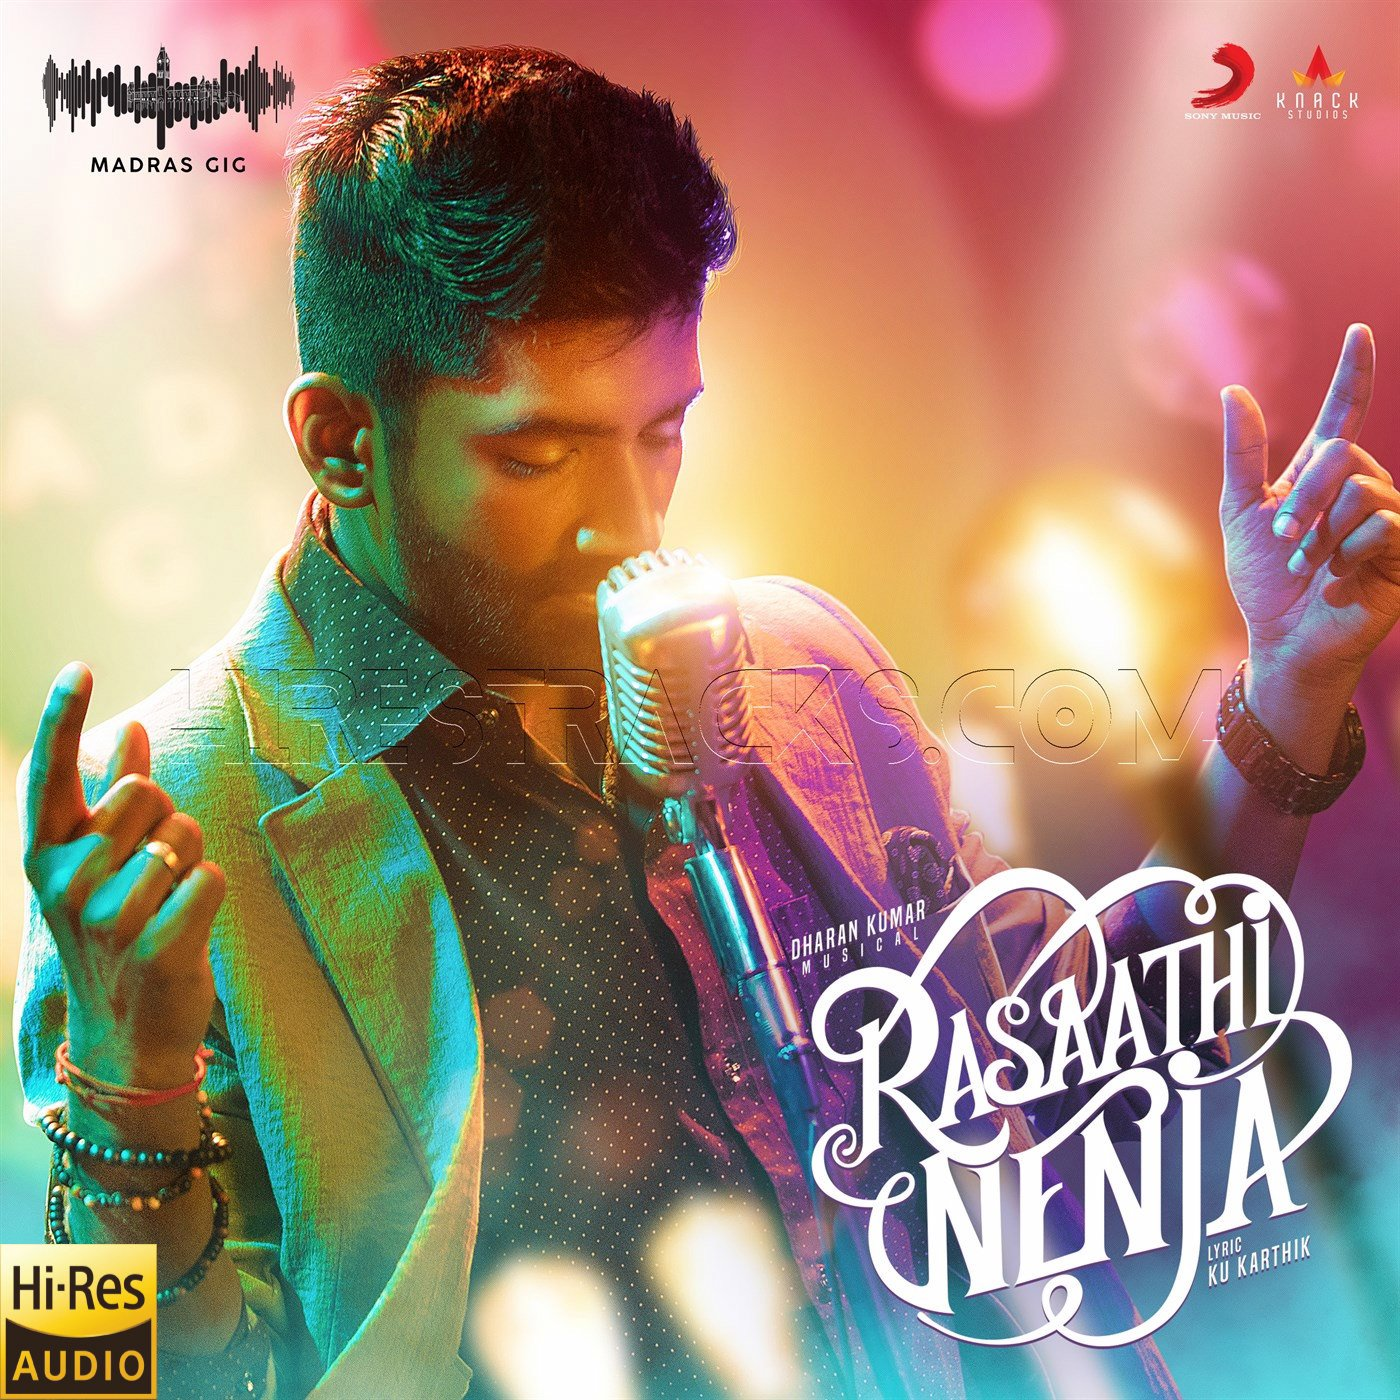 Rasaathi Nenja (Madras Gig Season 2) – Single (2019) (24 BIT-48 KHZ)